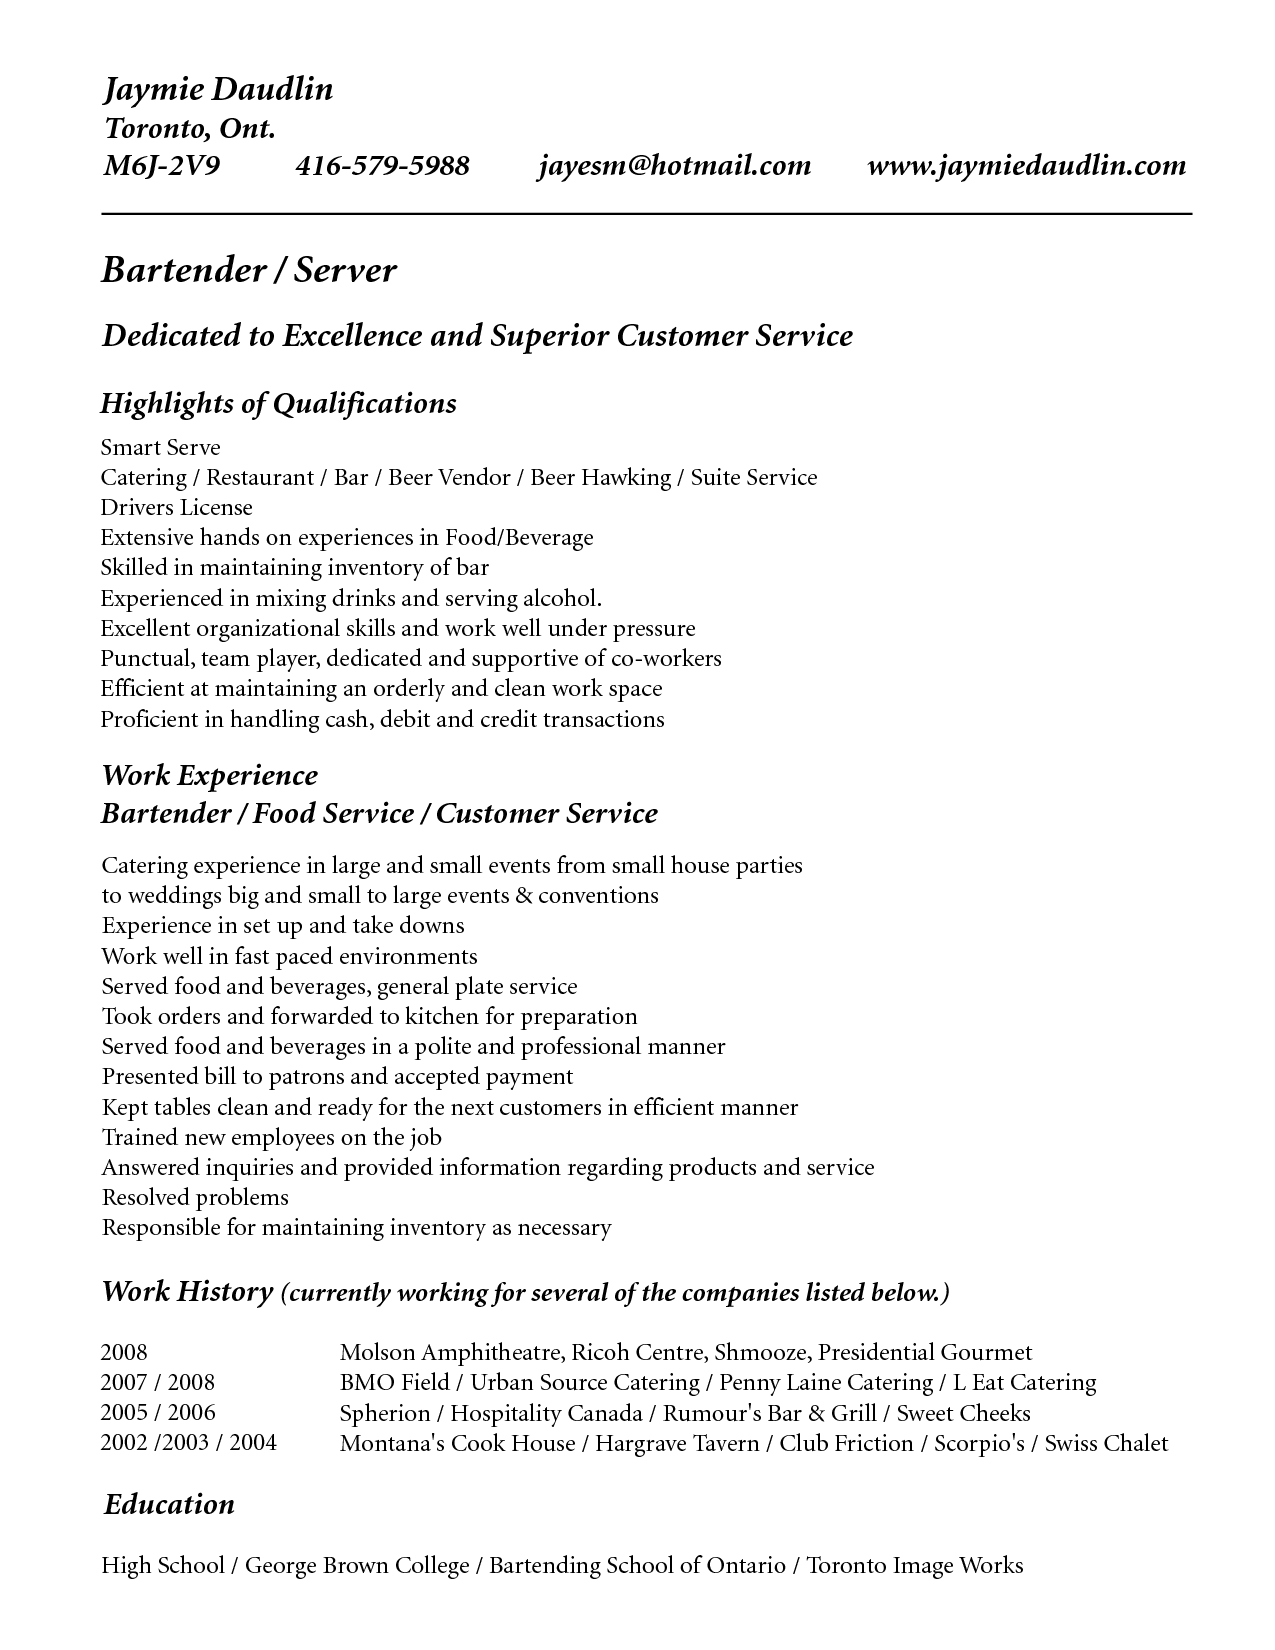 we already knew that we must put our educational information to any resume including the bartenders resume when you make your bartender resume - Resume For Bartender